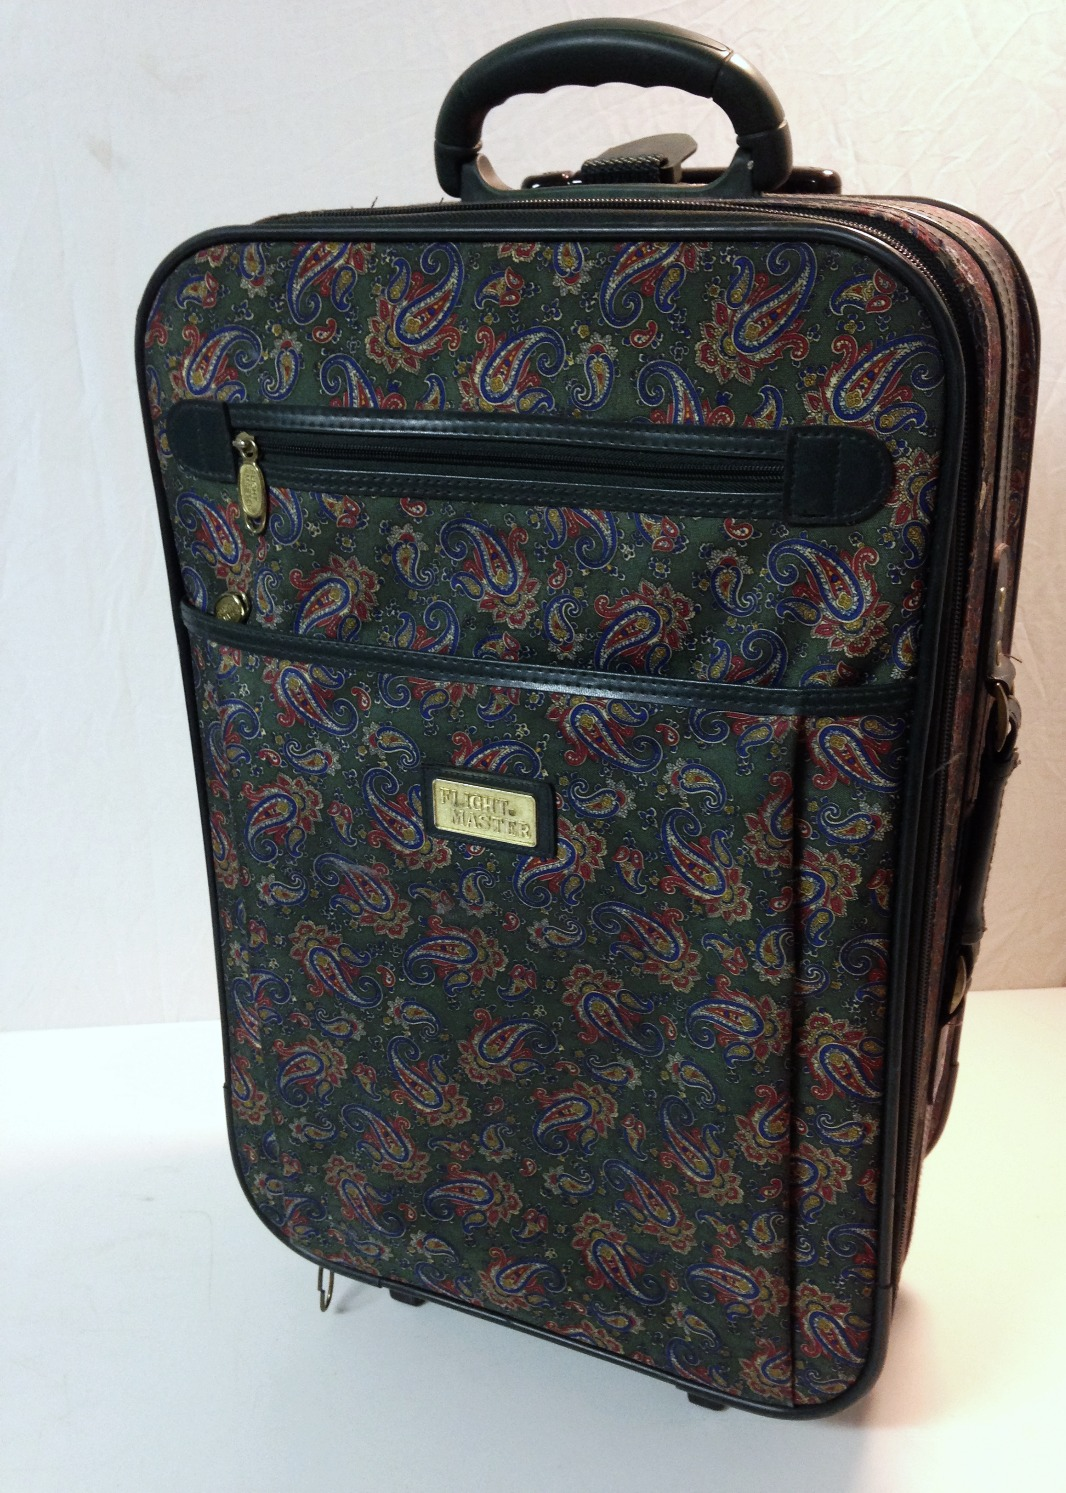 Paisley Patterned Suitcase